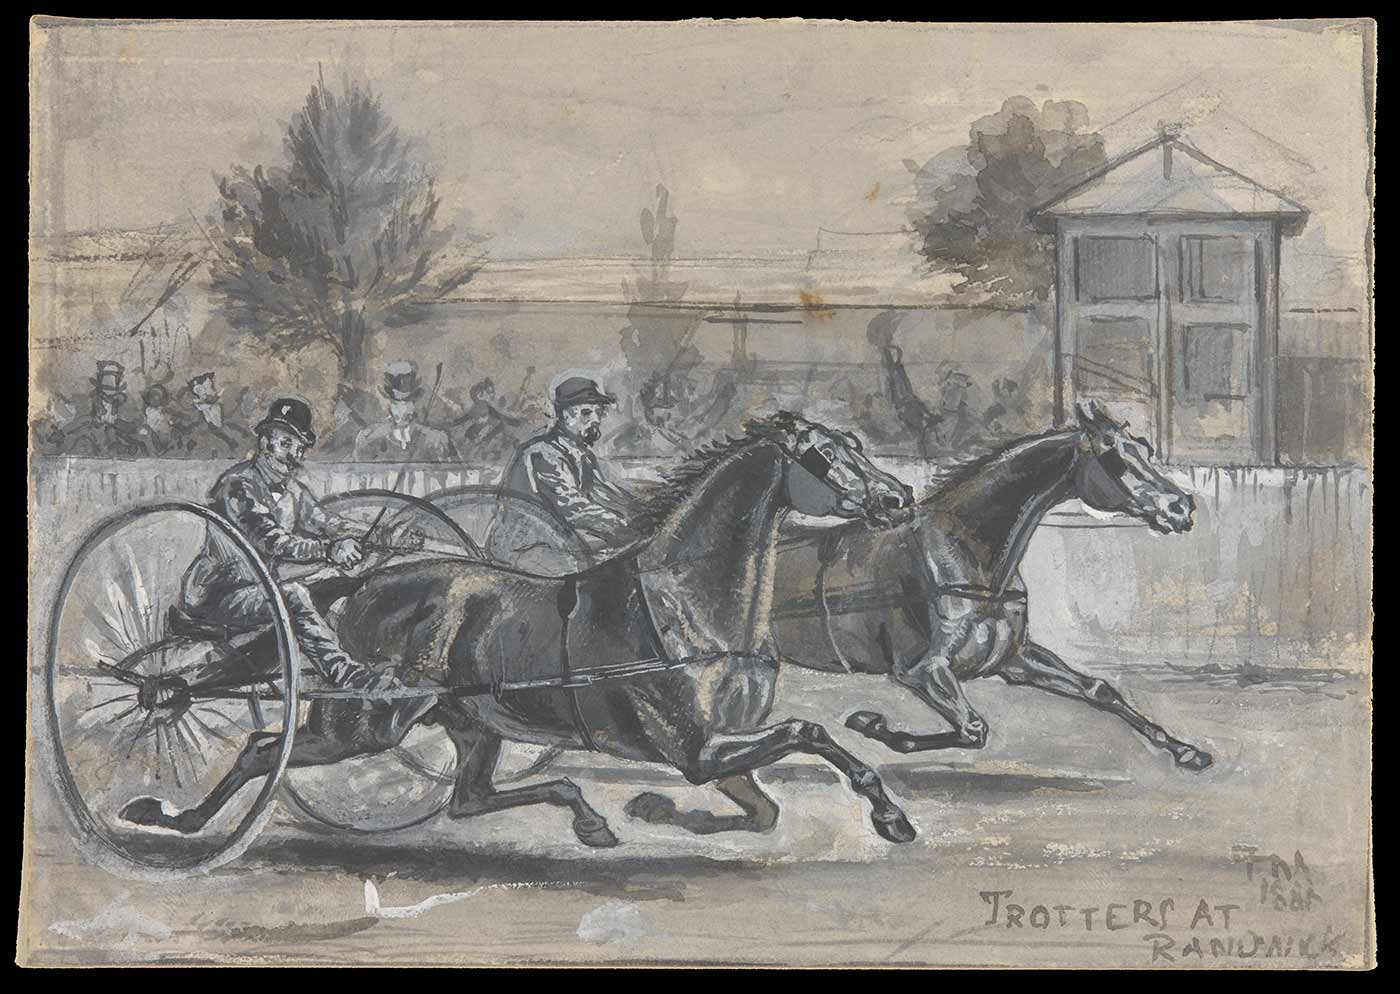 Black and white drawing showing two men in carts being pulled by racehorses.